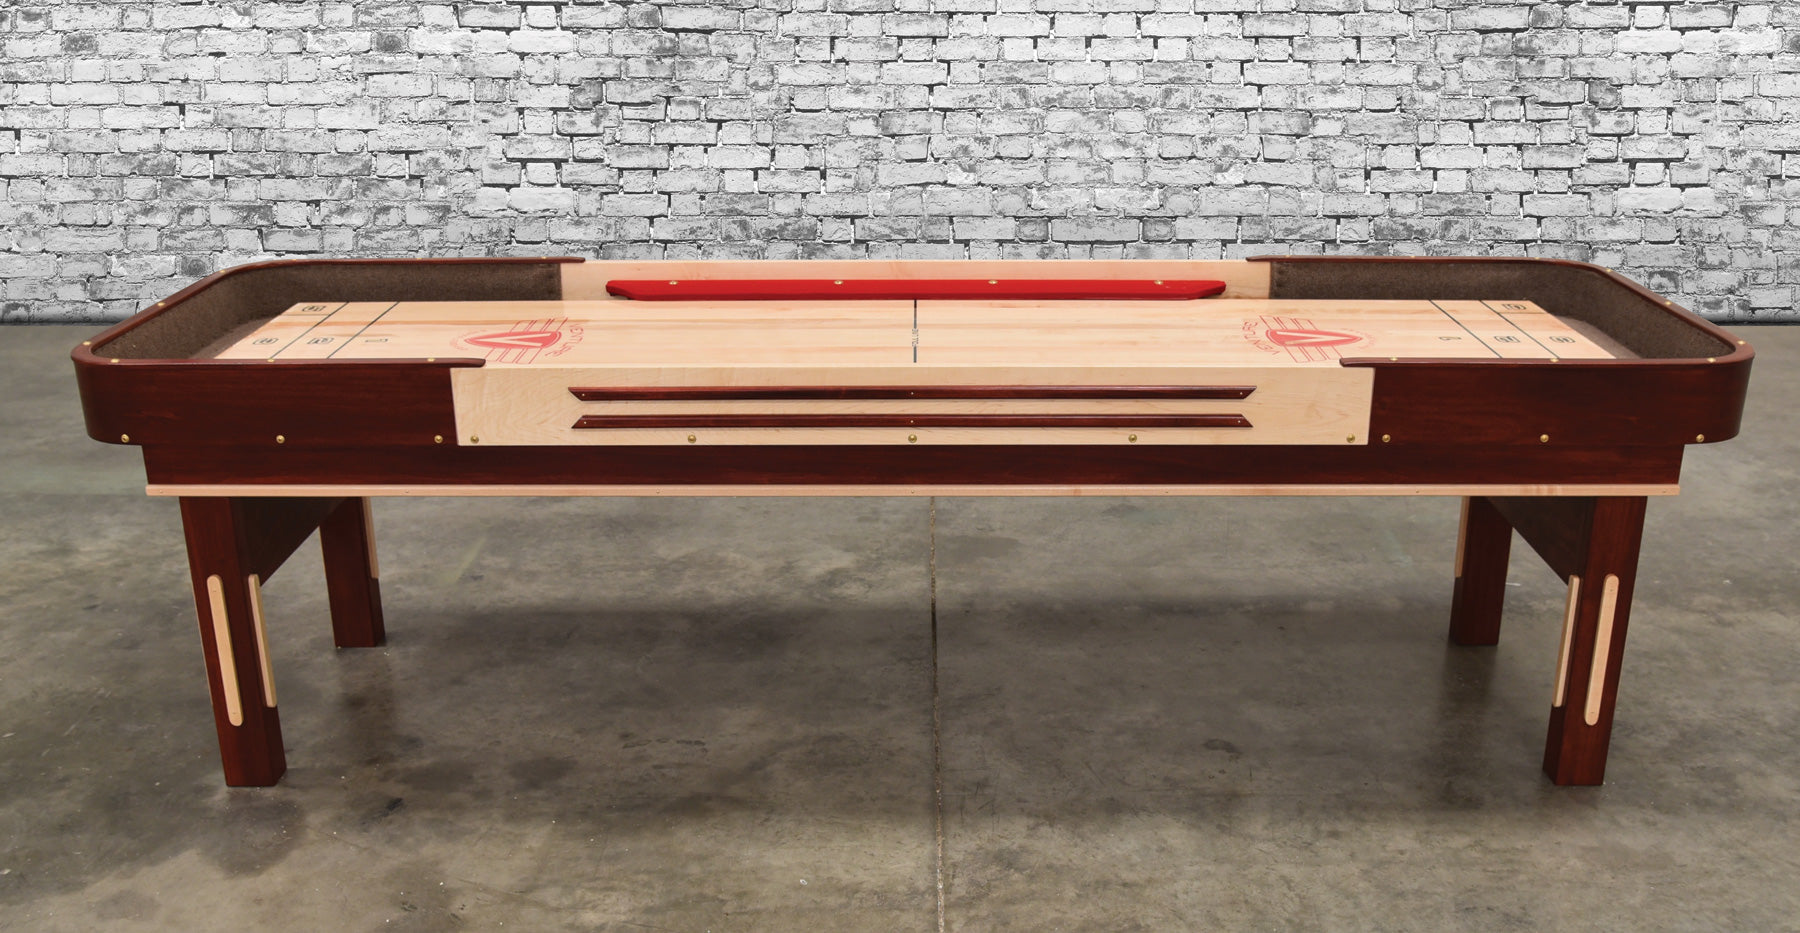 Grand Deluxe Bank Shot Shuffleboard Table